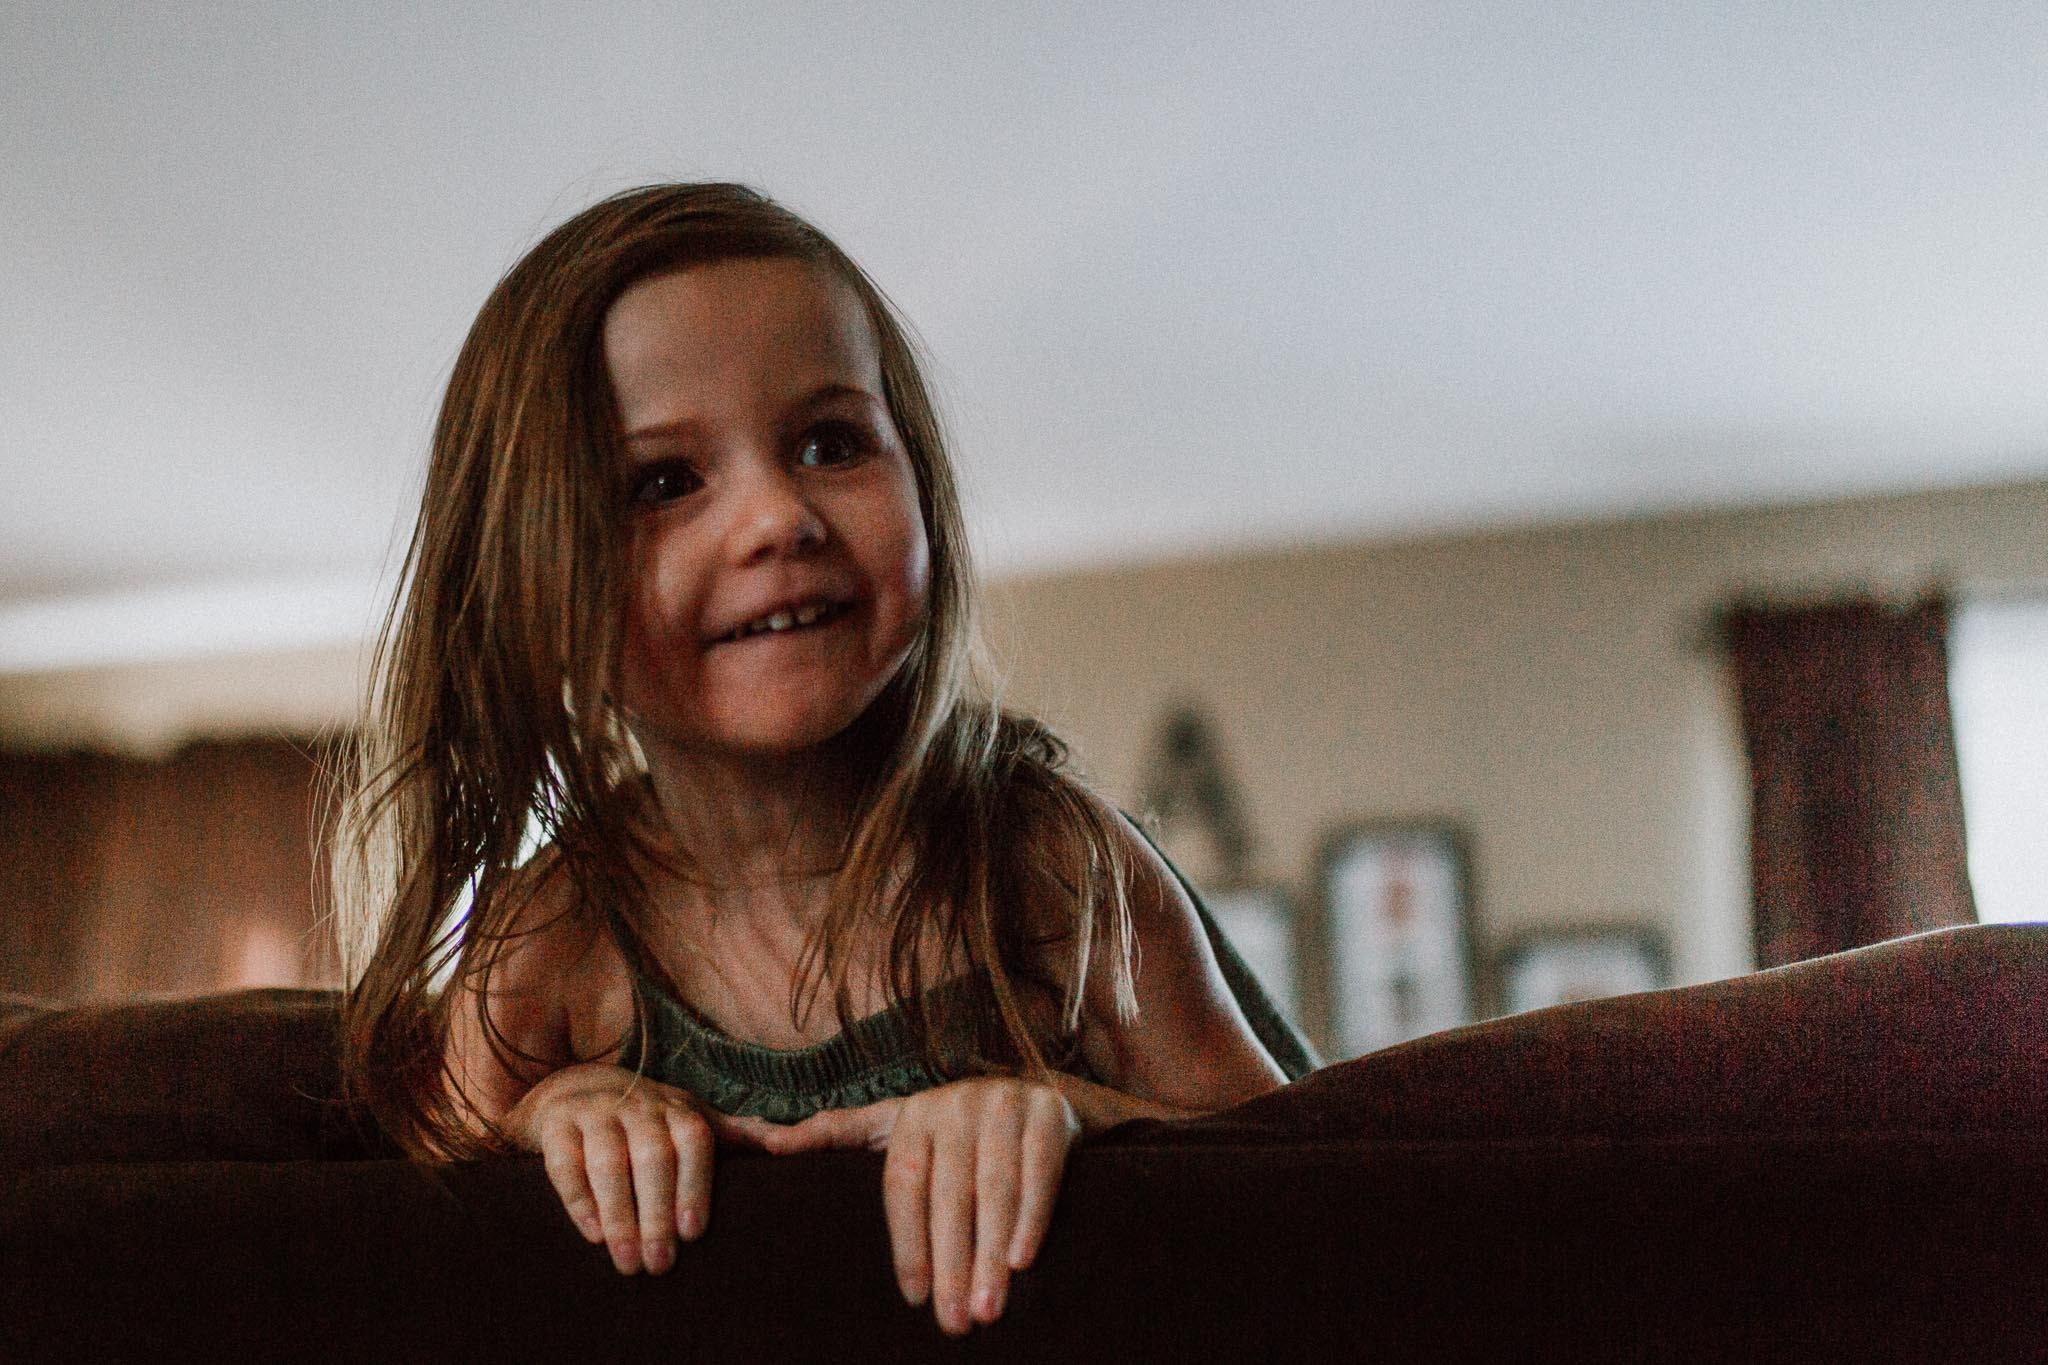 Young girl leaning over the back of a couch laughing